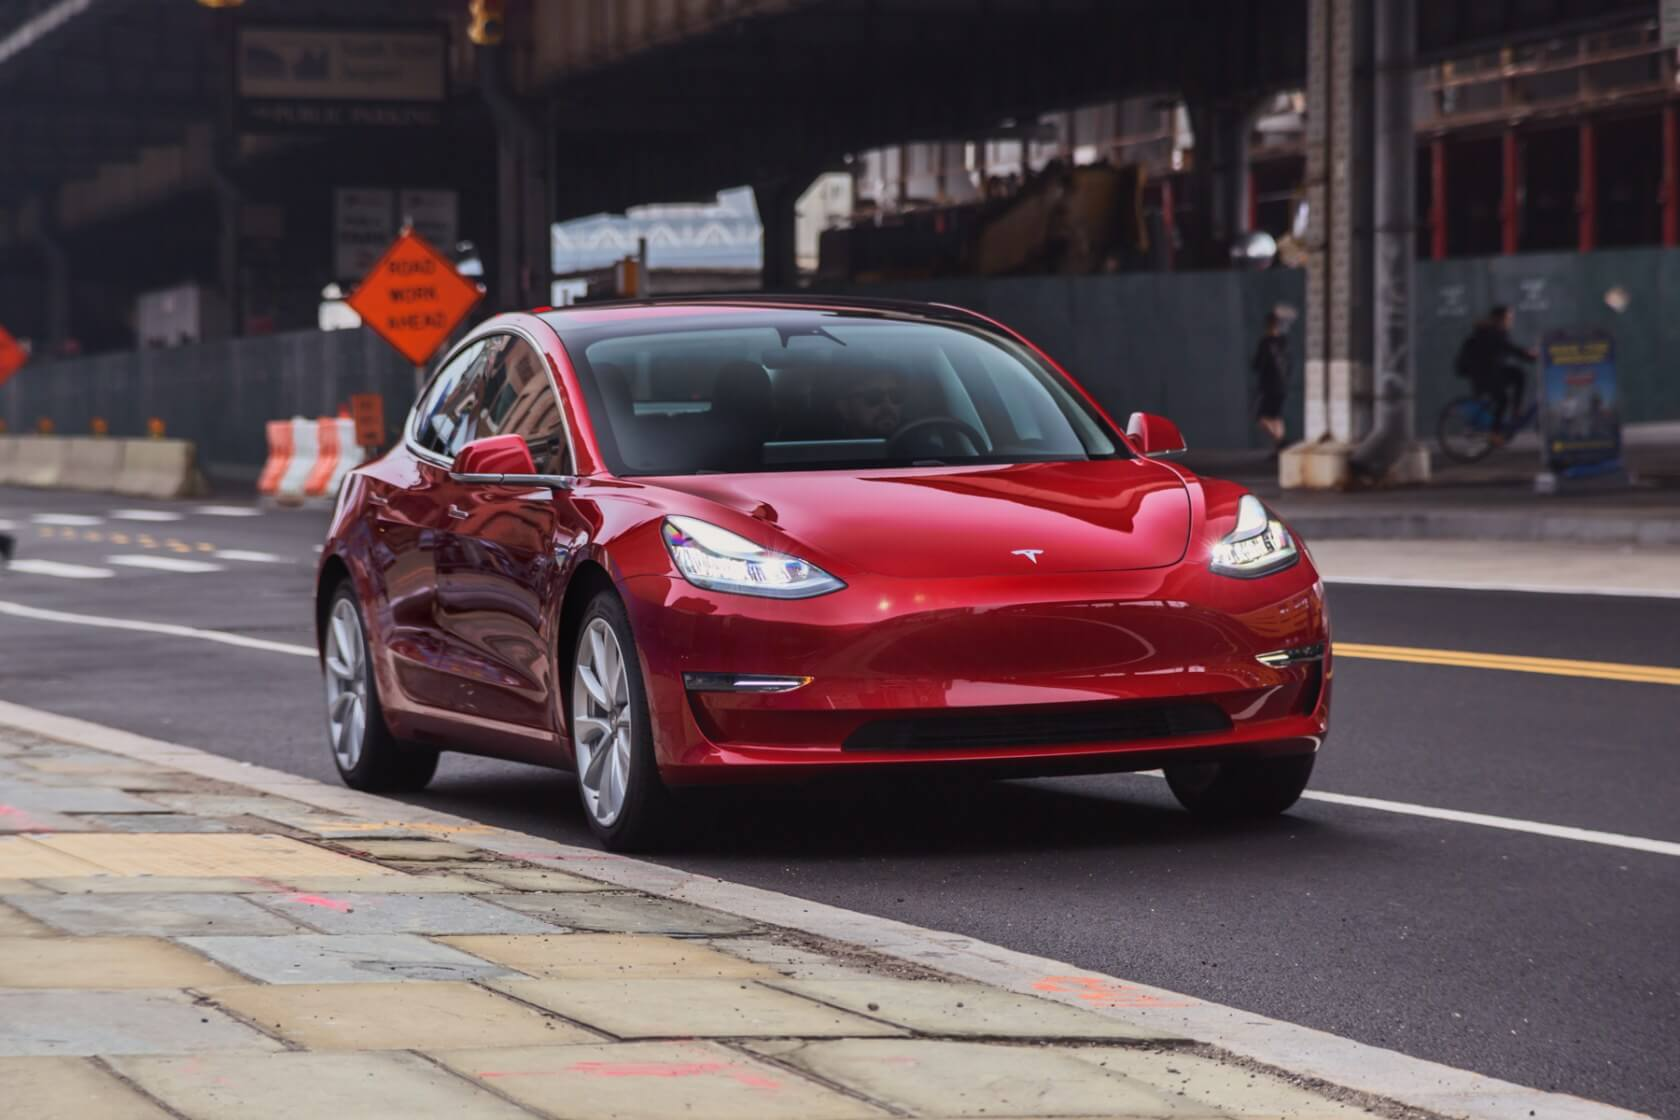 Hack a Tesla Model 3, get cash and the auto